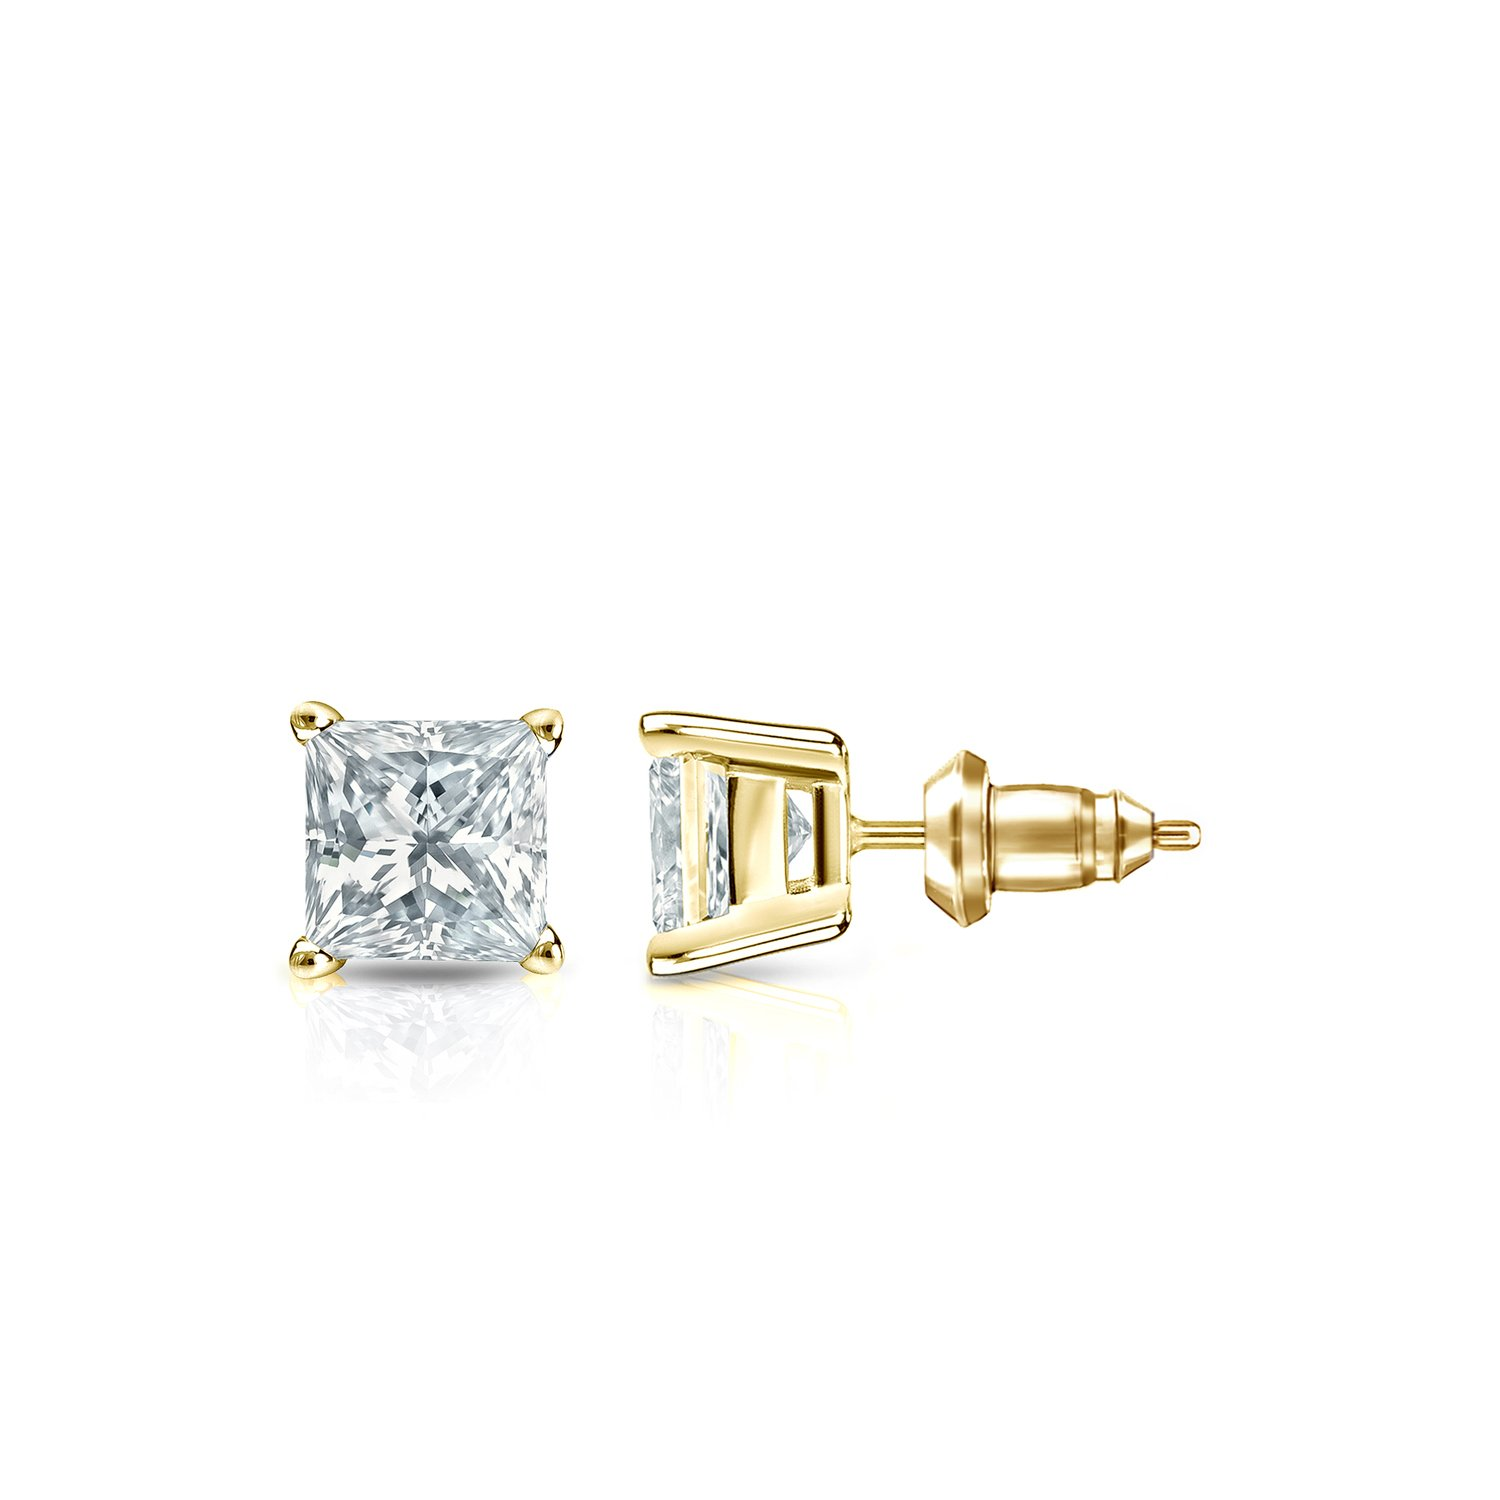 14k Yellow Gold 4-Prong Basket Princess Diamond Stud Earrings (1/2ct,White,SI1-SI2)